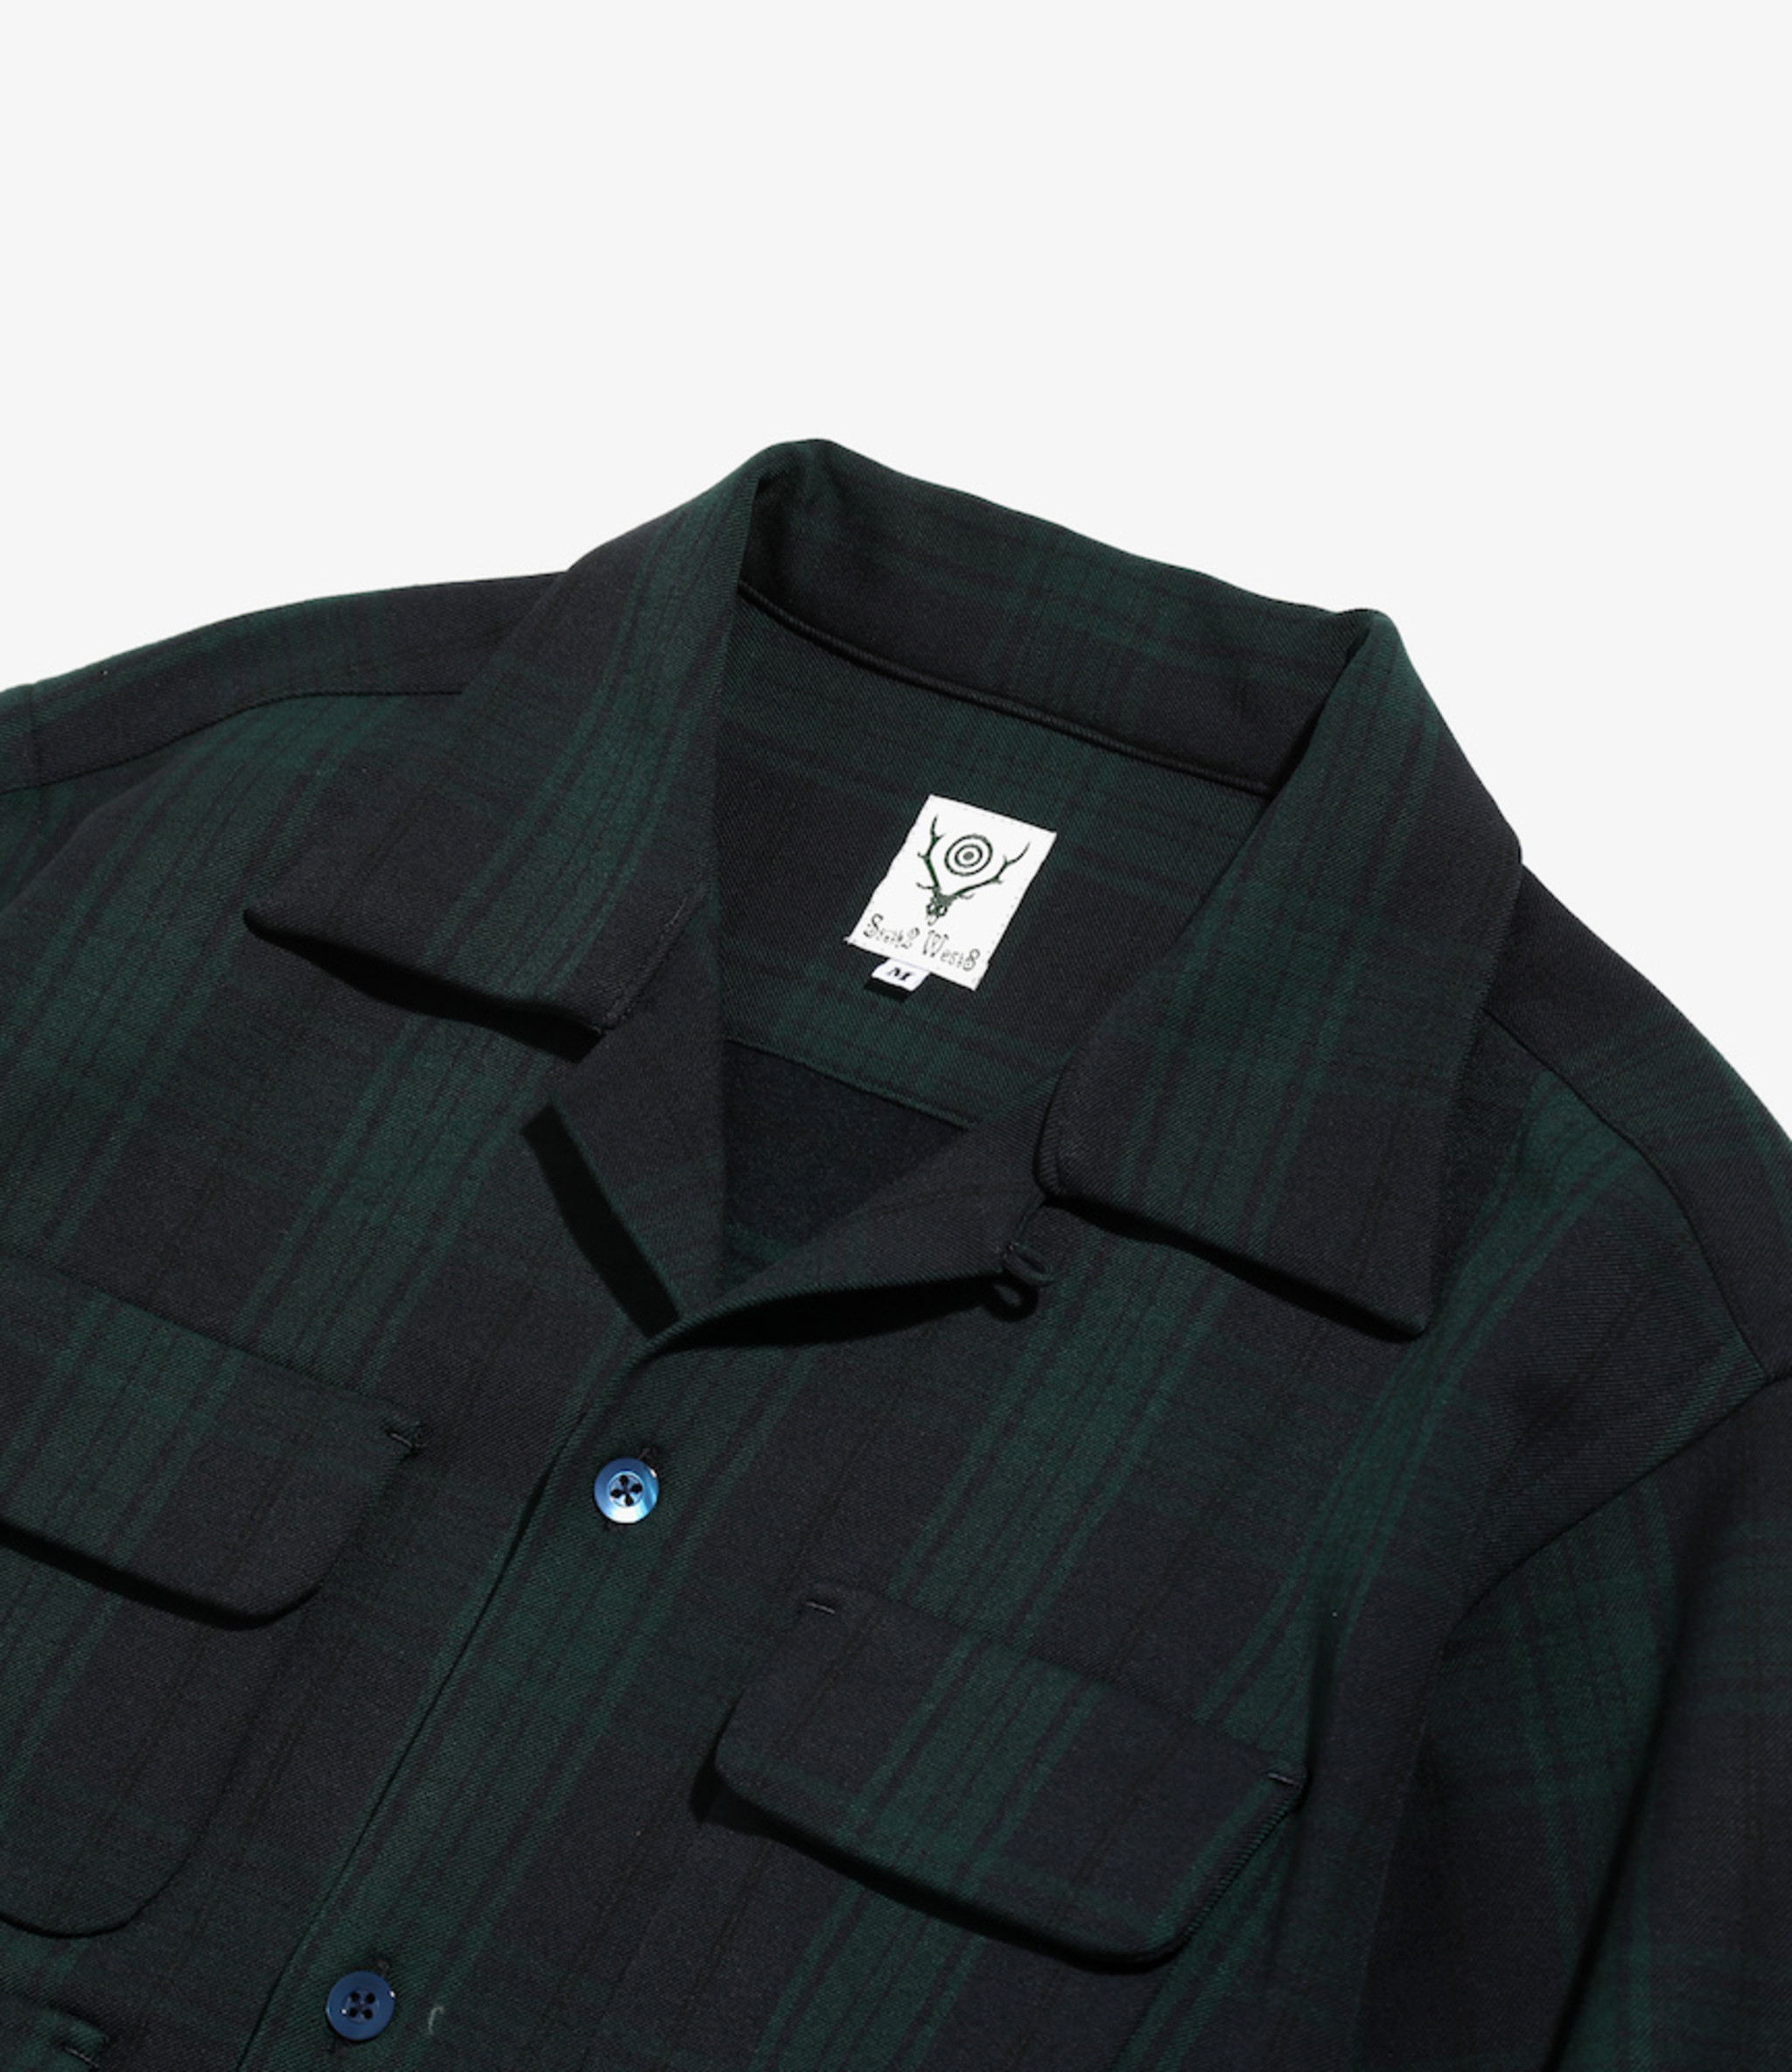 South2 West8 6 Pocket Classic Shirt - Blackwatch - Green / Navy